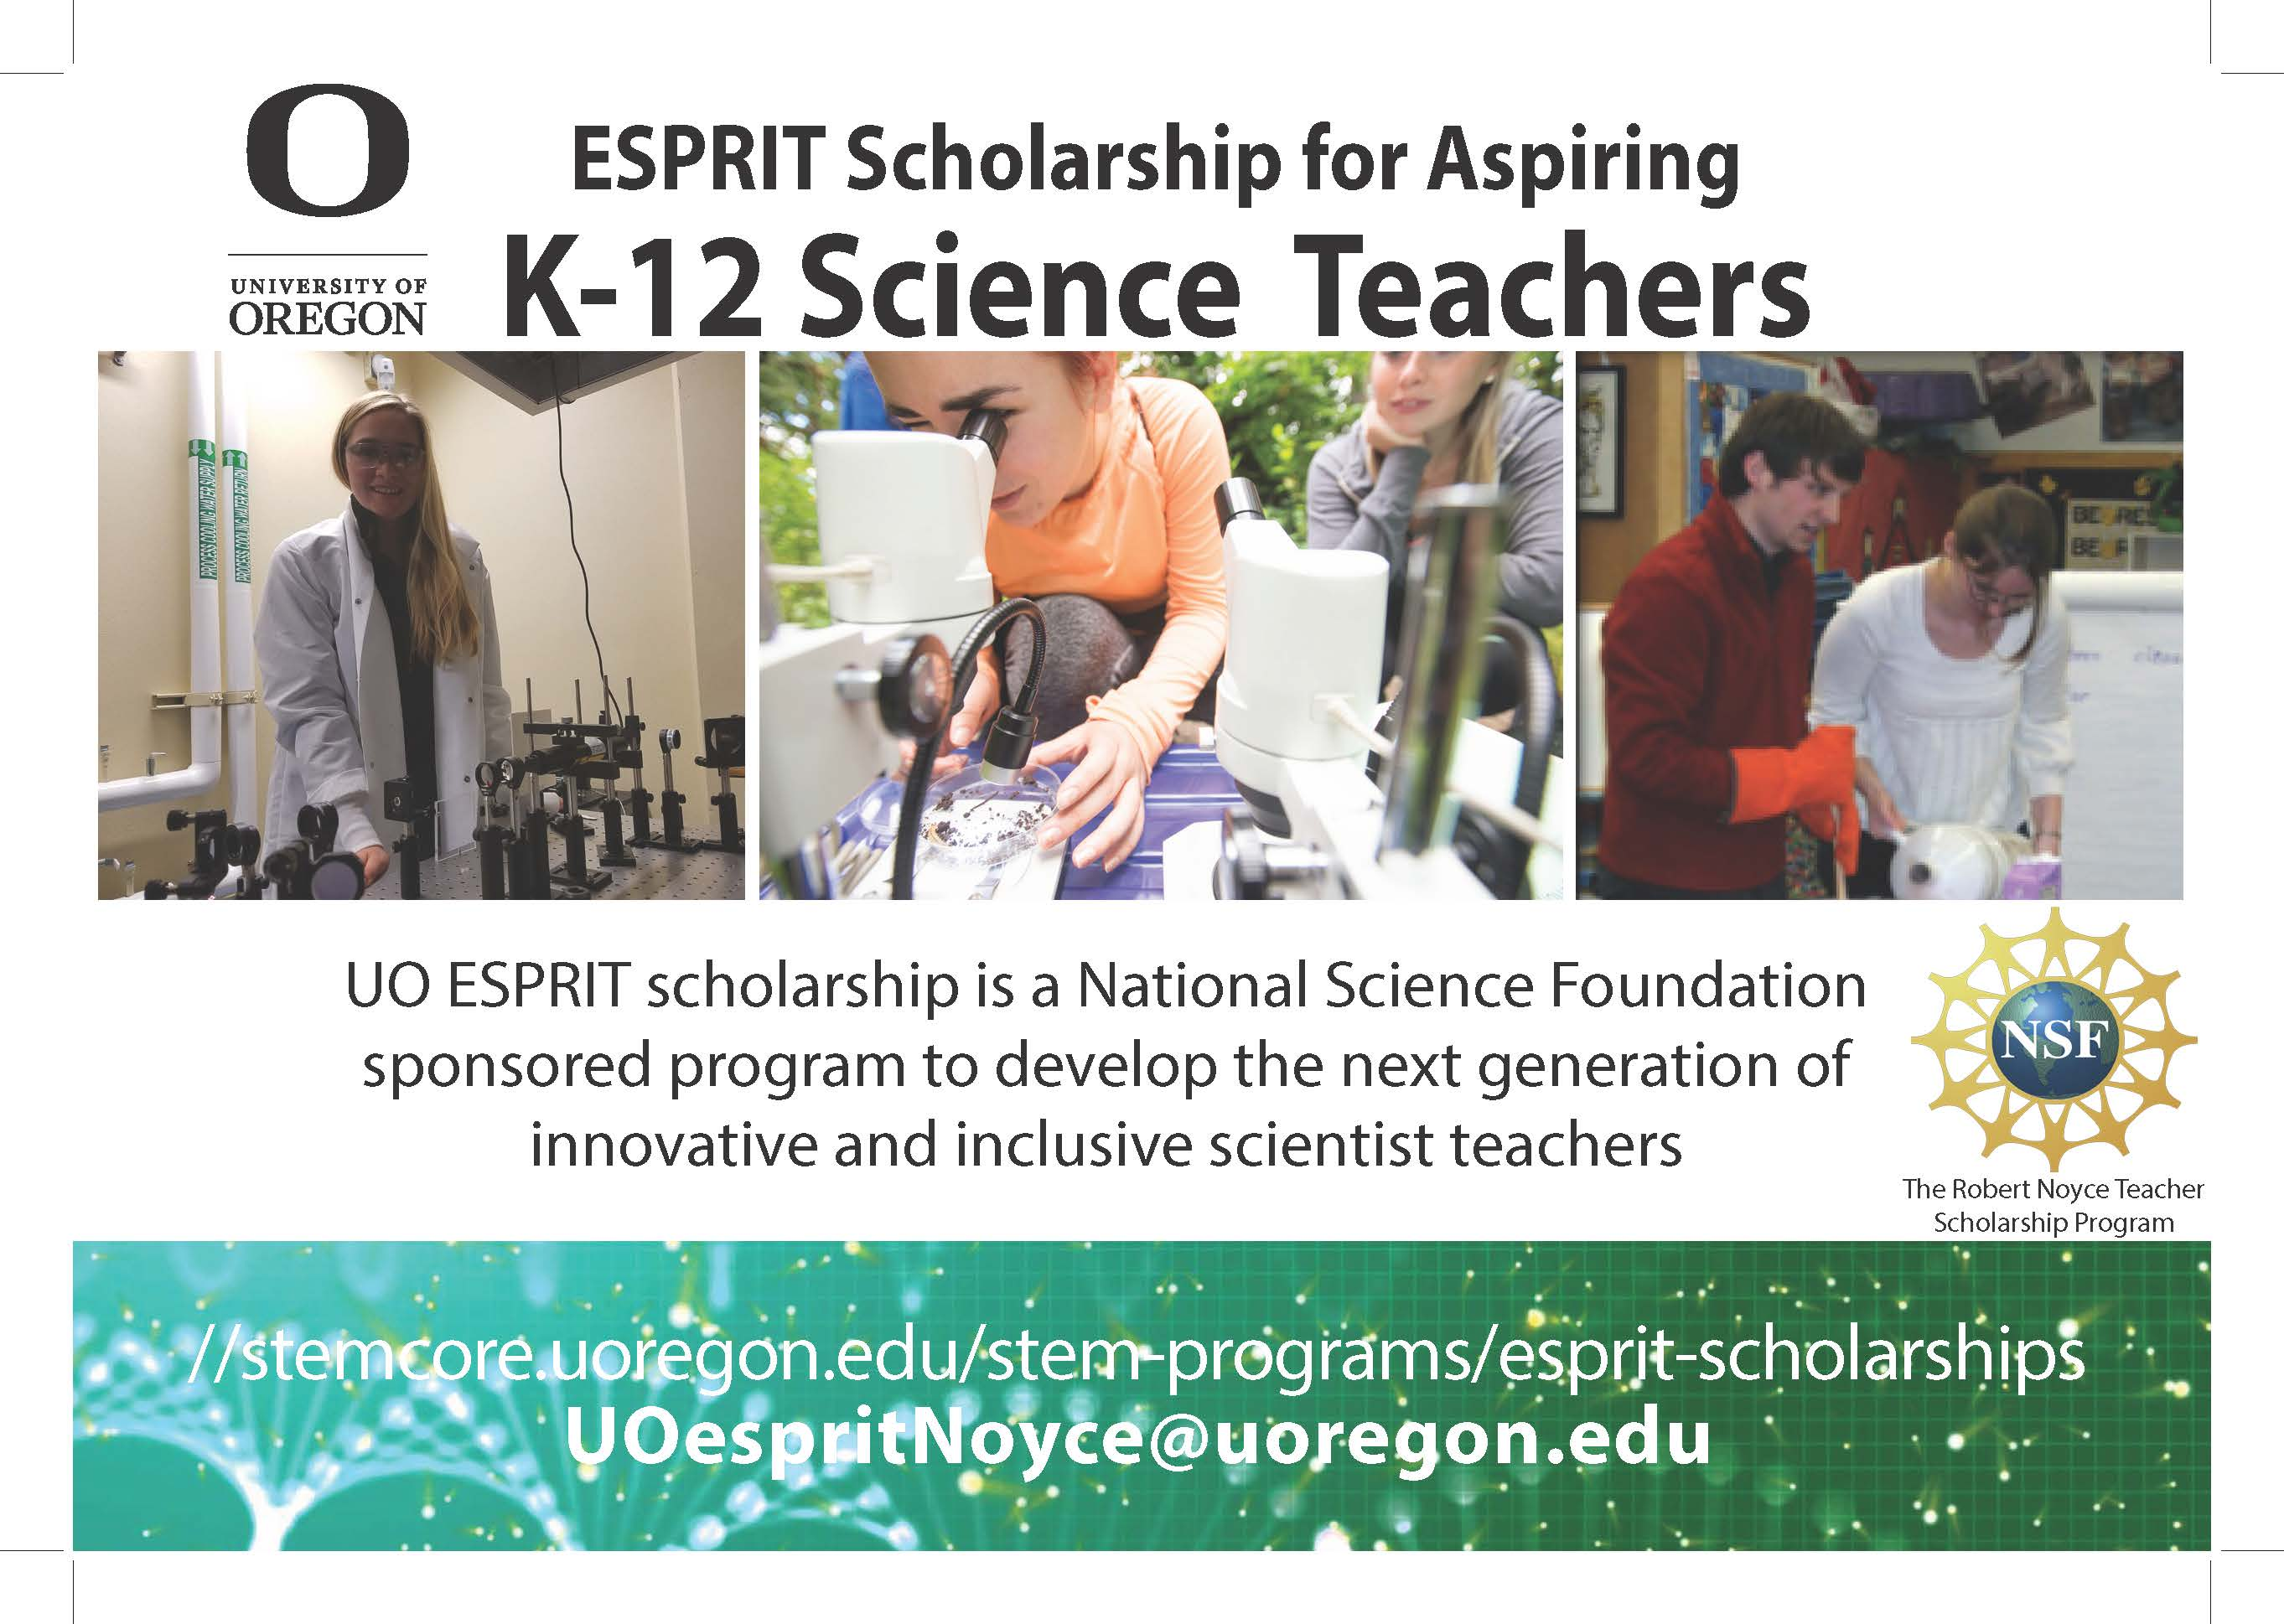 Flier: ESPRIT Scholarship for Aspiring K-12 Science Teachers